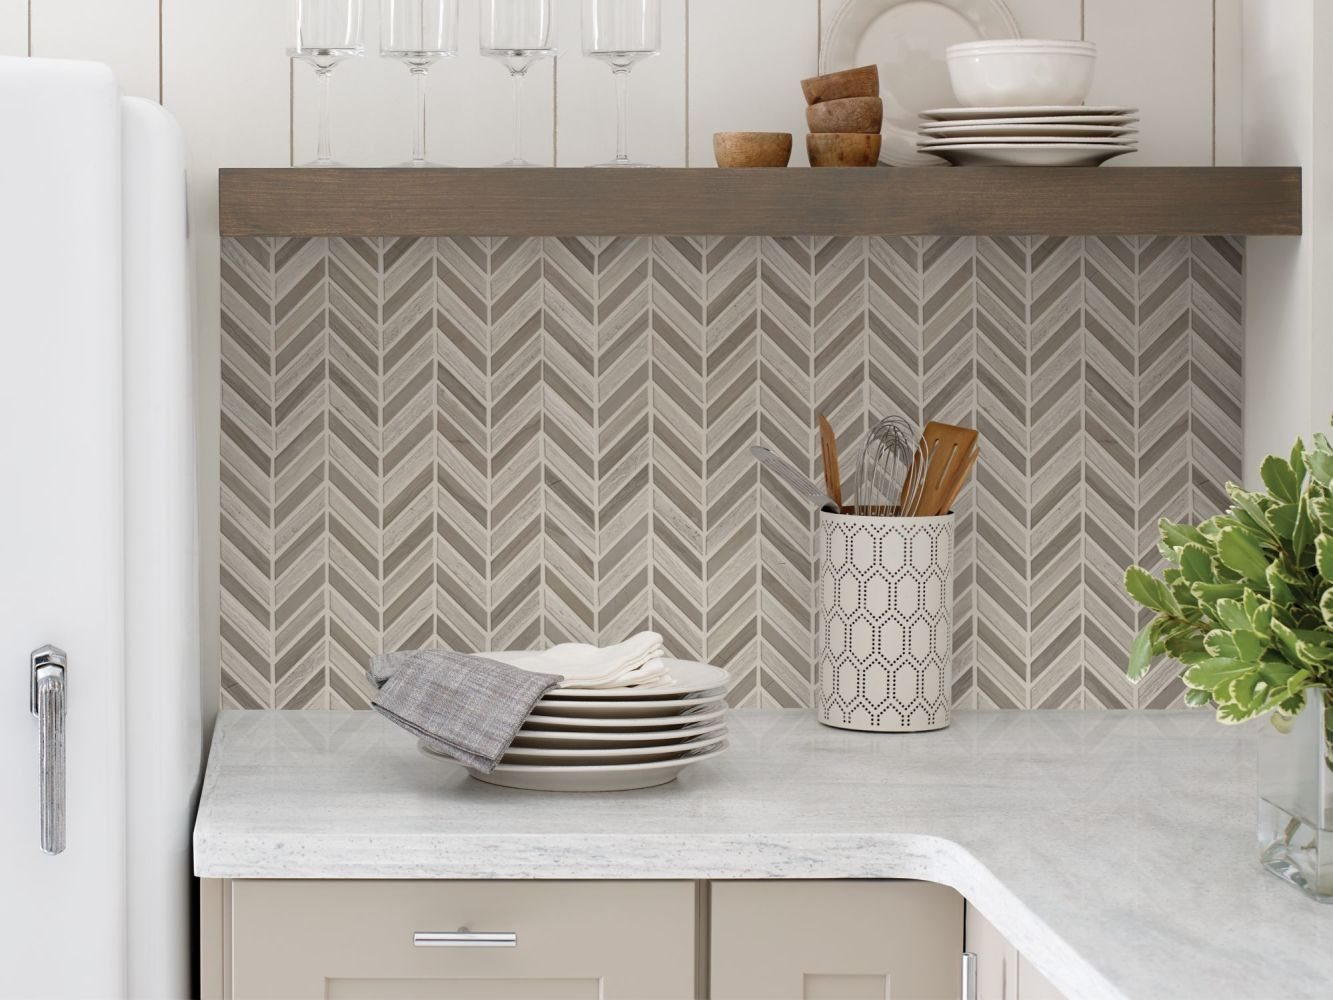 Shaw Floors SFA Pearl Chevron Mosaic Rockwood/Urban Grey 00555_SA31A